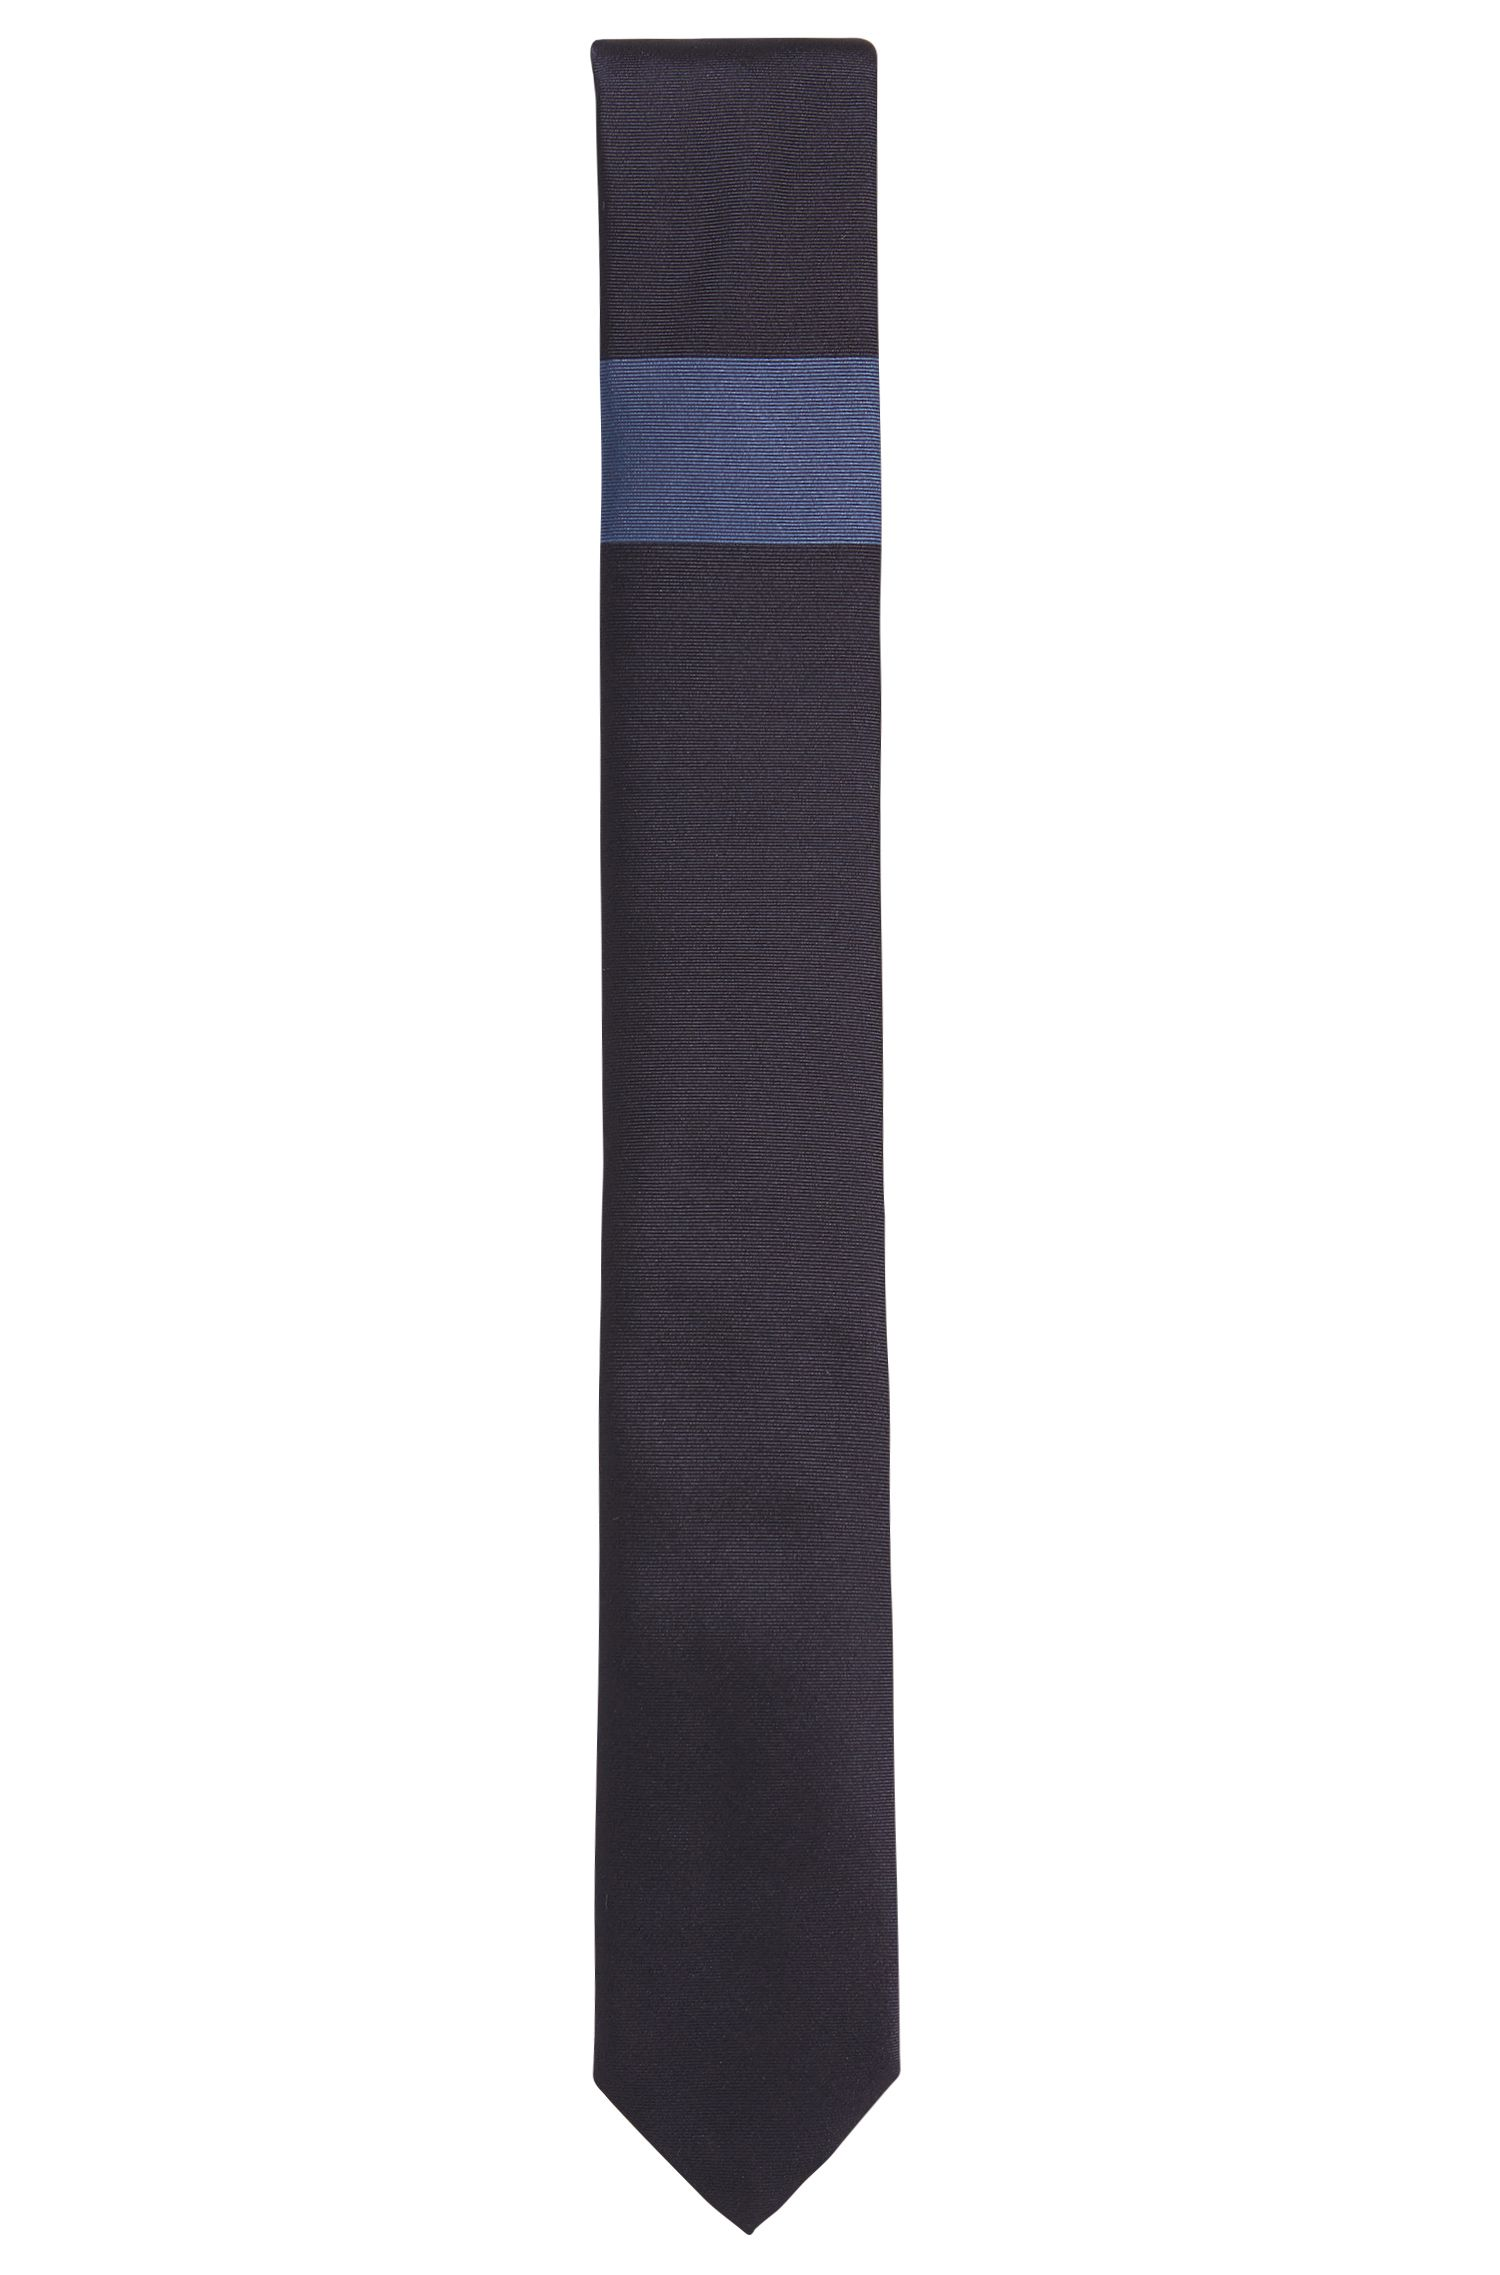 Silk tie with horizontal colourblock detail